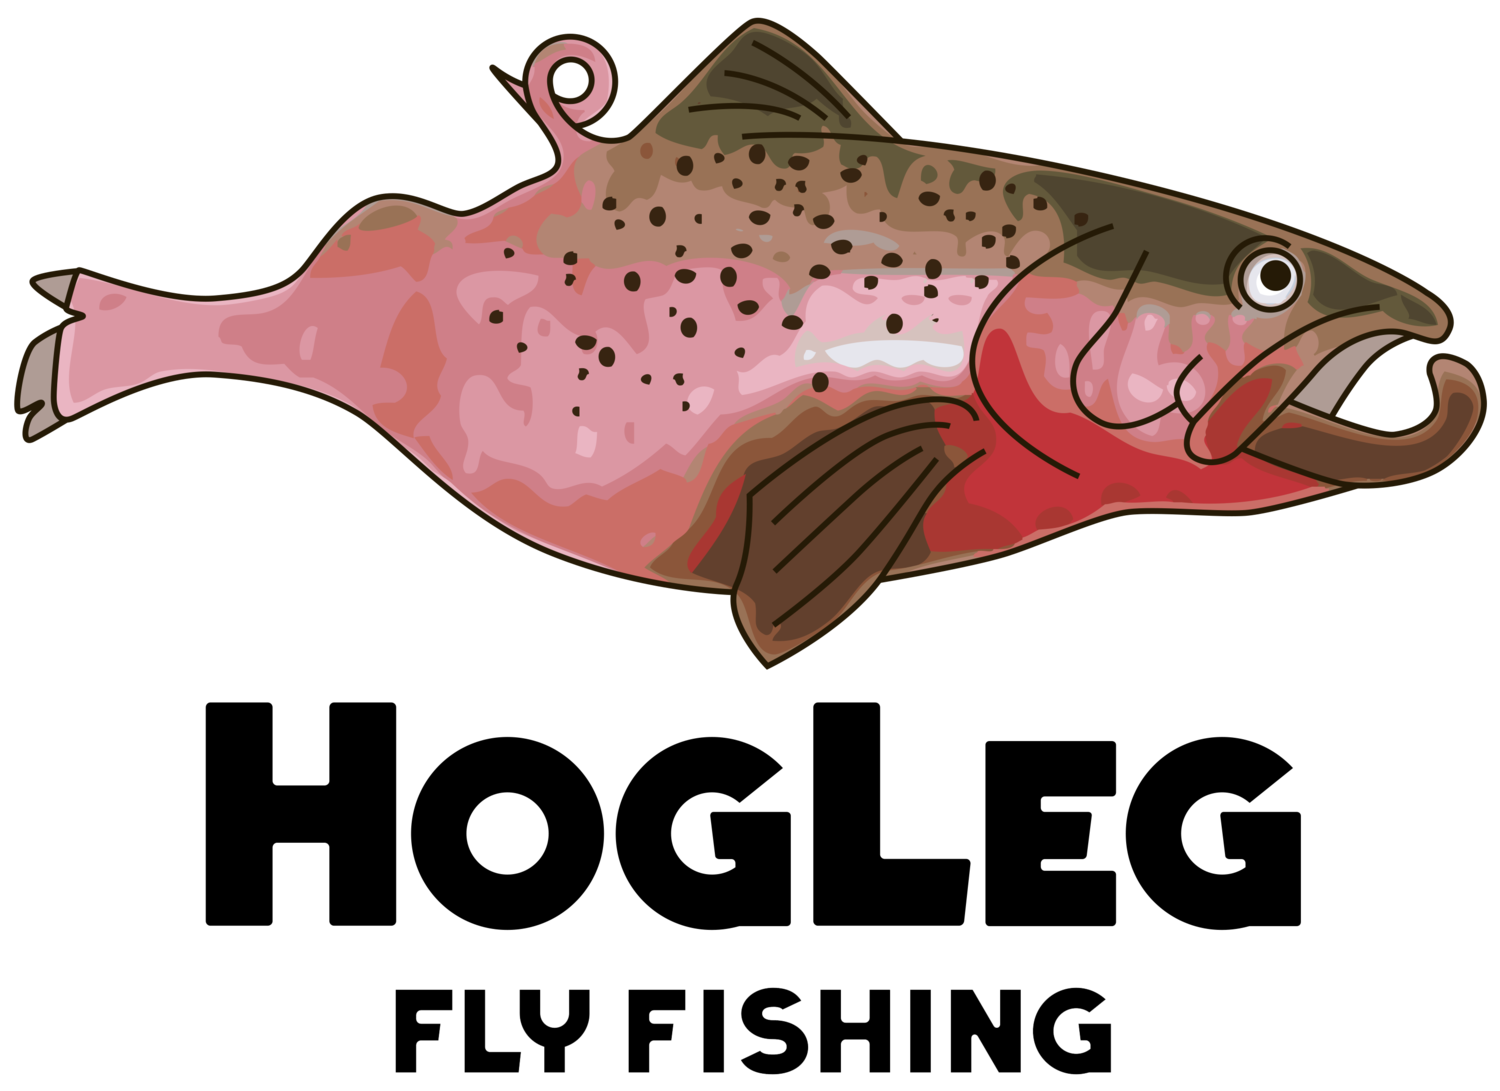 Hog leg fly fishing. Salmon clipart cutthroat trout